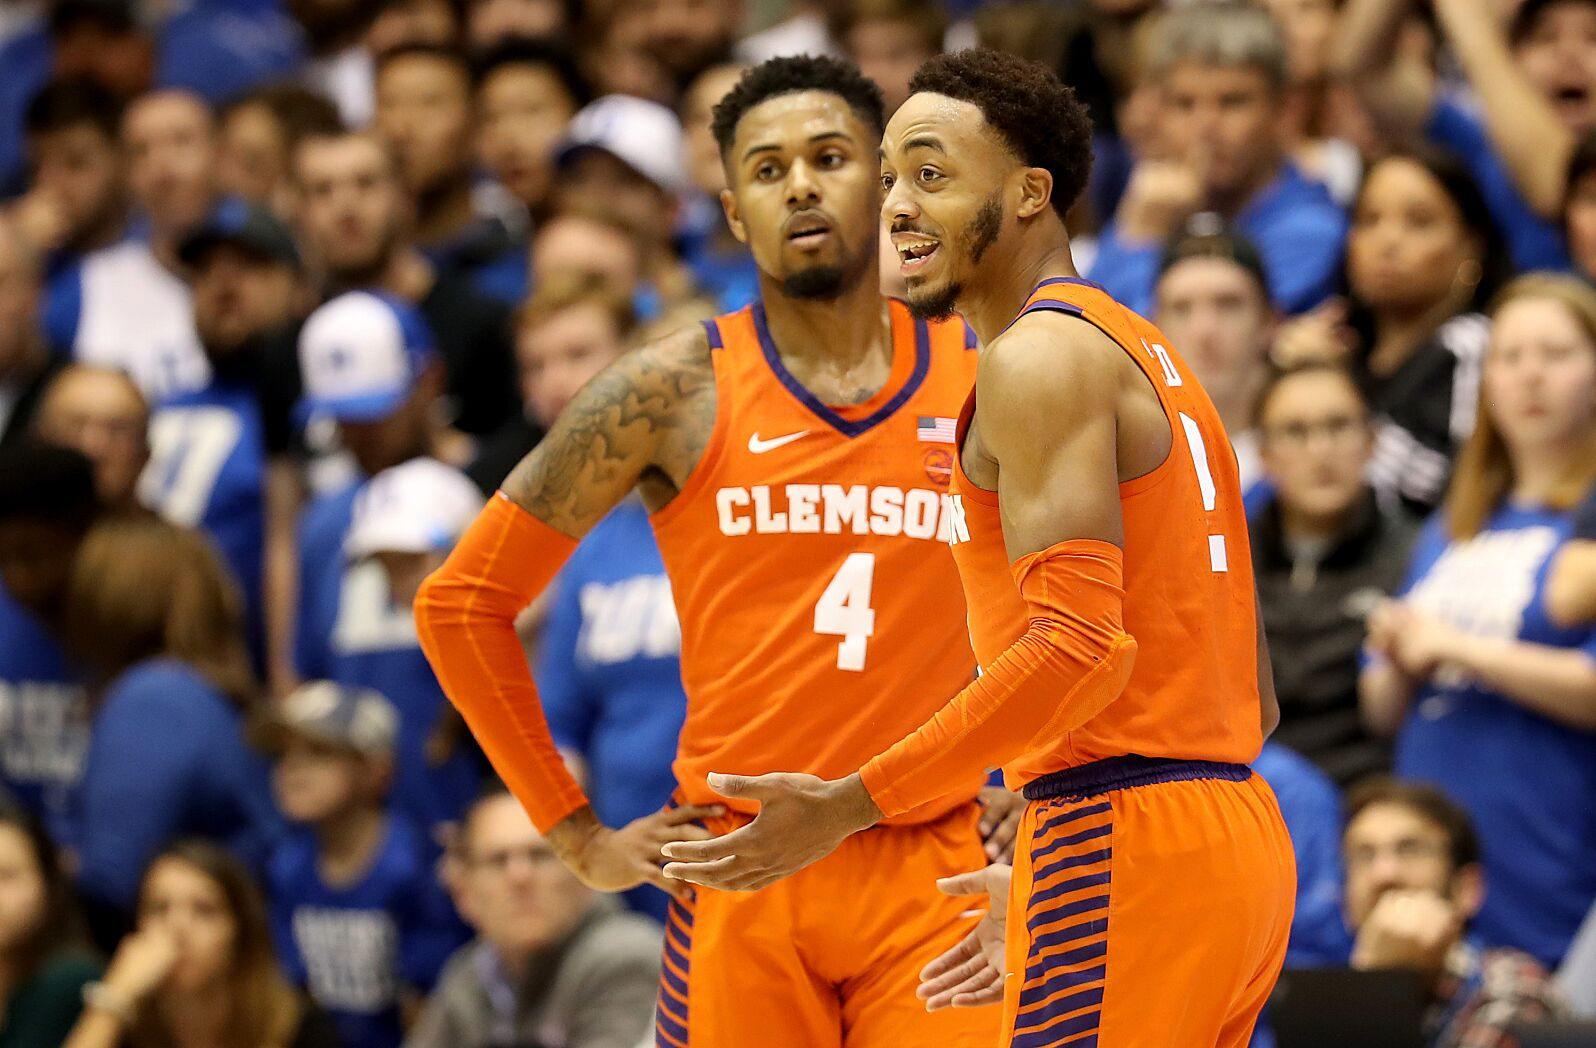 Syracuse Basketball: Clemson Tigers crystal ball predictions